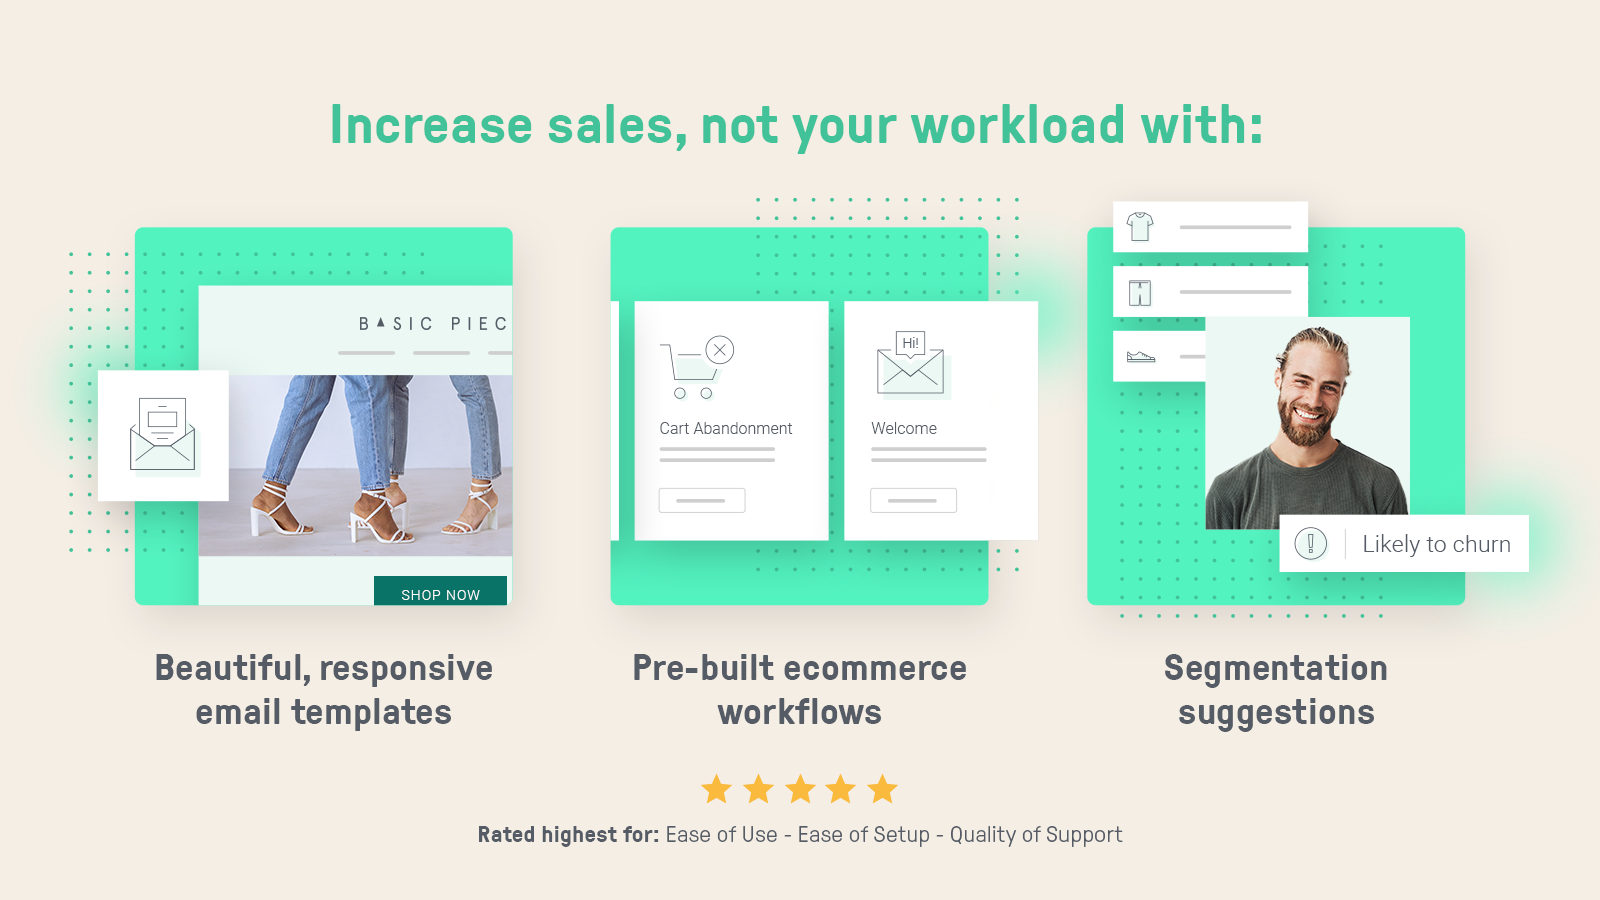 Omnisend email templates, pre-built workflows,segmentation tools